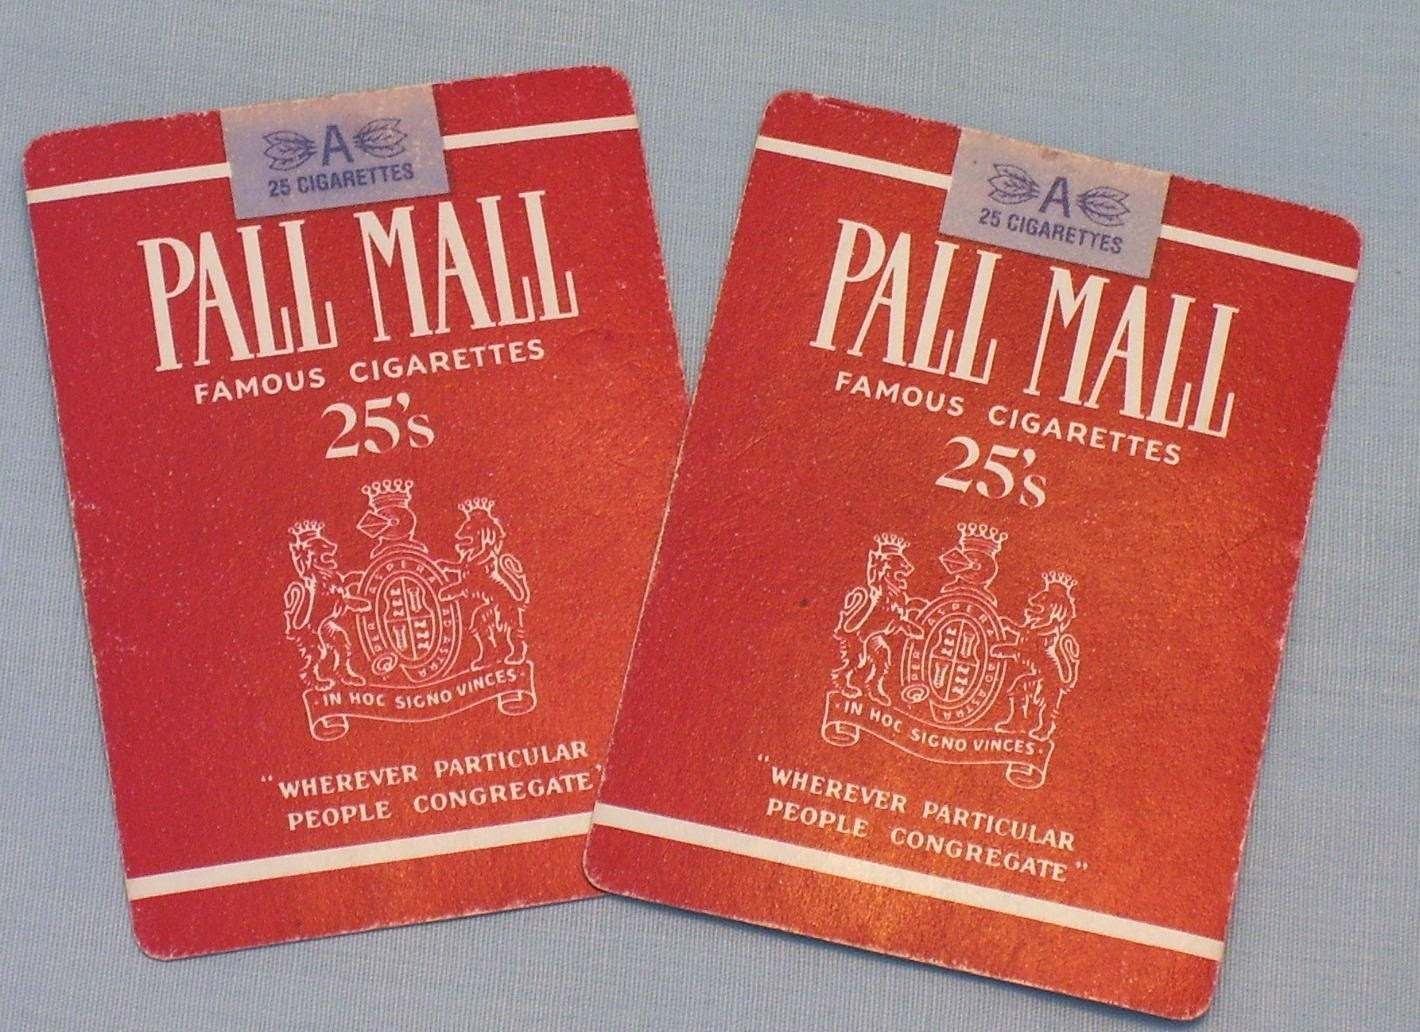 Pall Mall Cigarette Coupons Printable 2018 : Knotts Scary Farm Haunt - Free Printable Cigarette Coupons